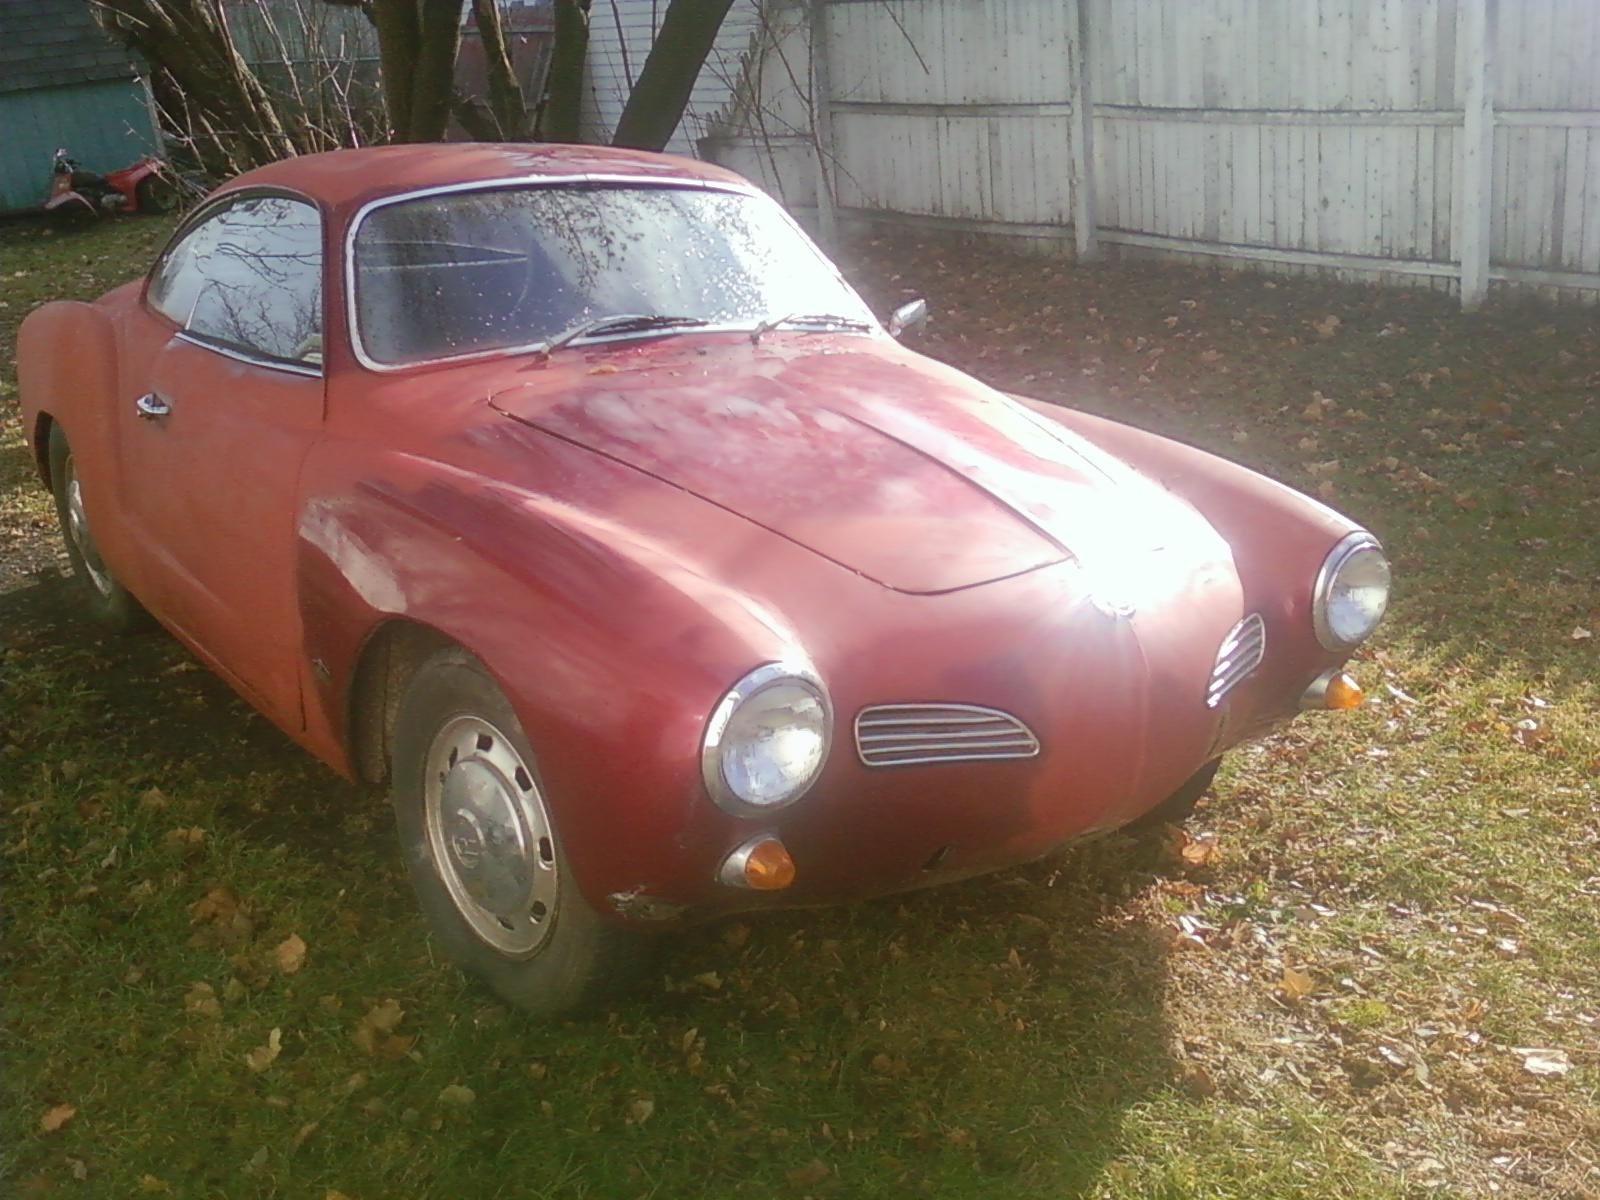 rev-it-up 1967 Volkswagen Karmann Ghia